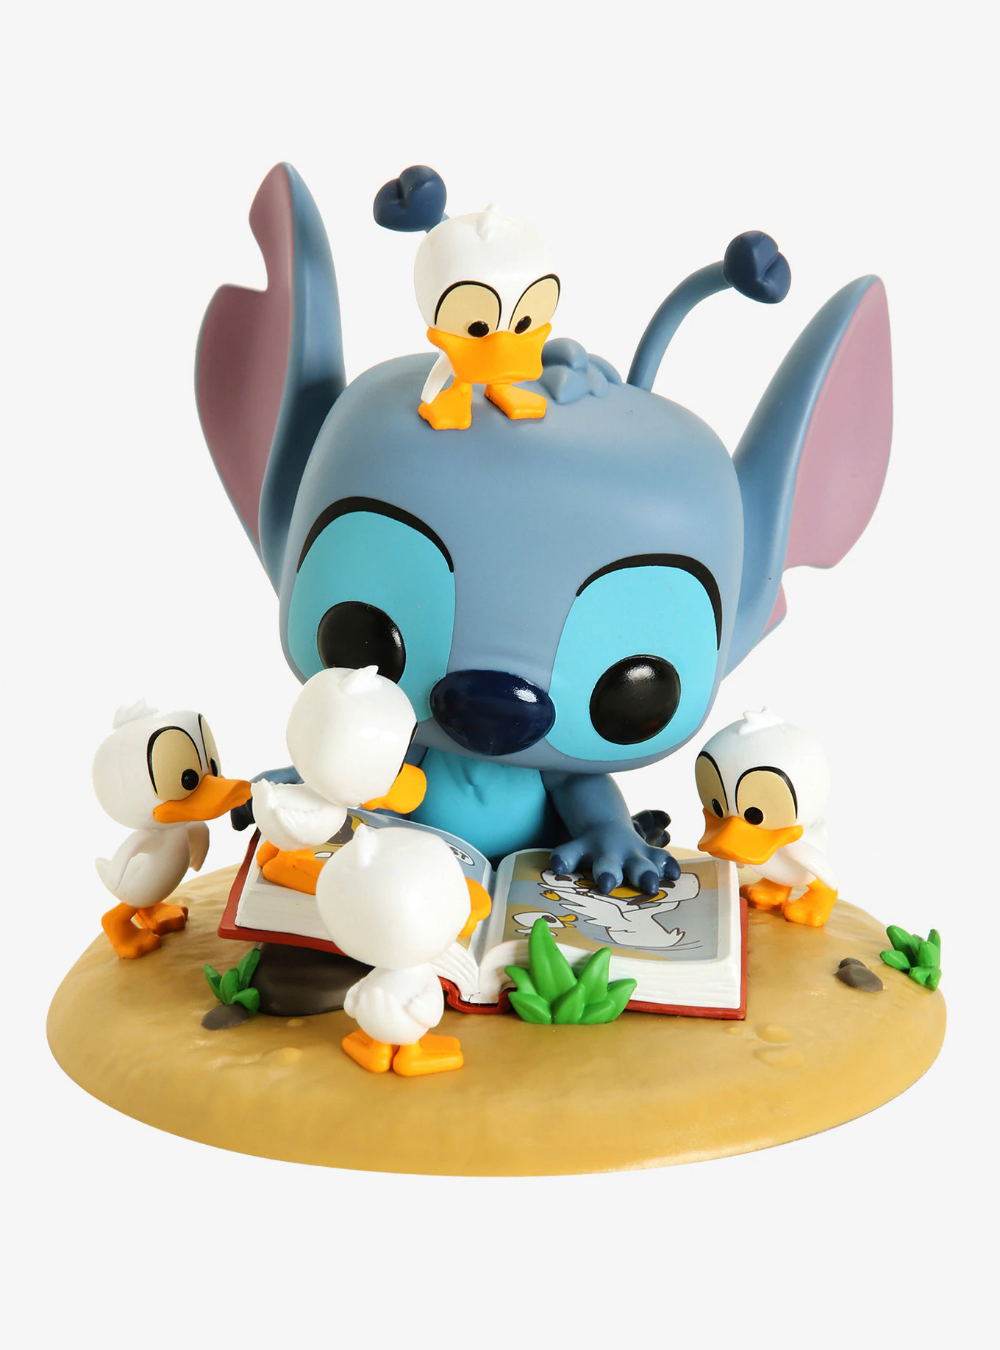 Funko Pop! Disney Lilo & Stitch Stitch with Ducks Vinyl Figure - BoxLunch Exclusive